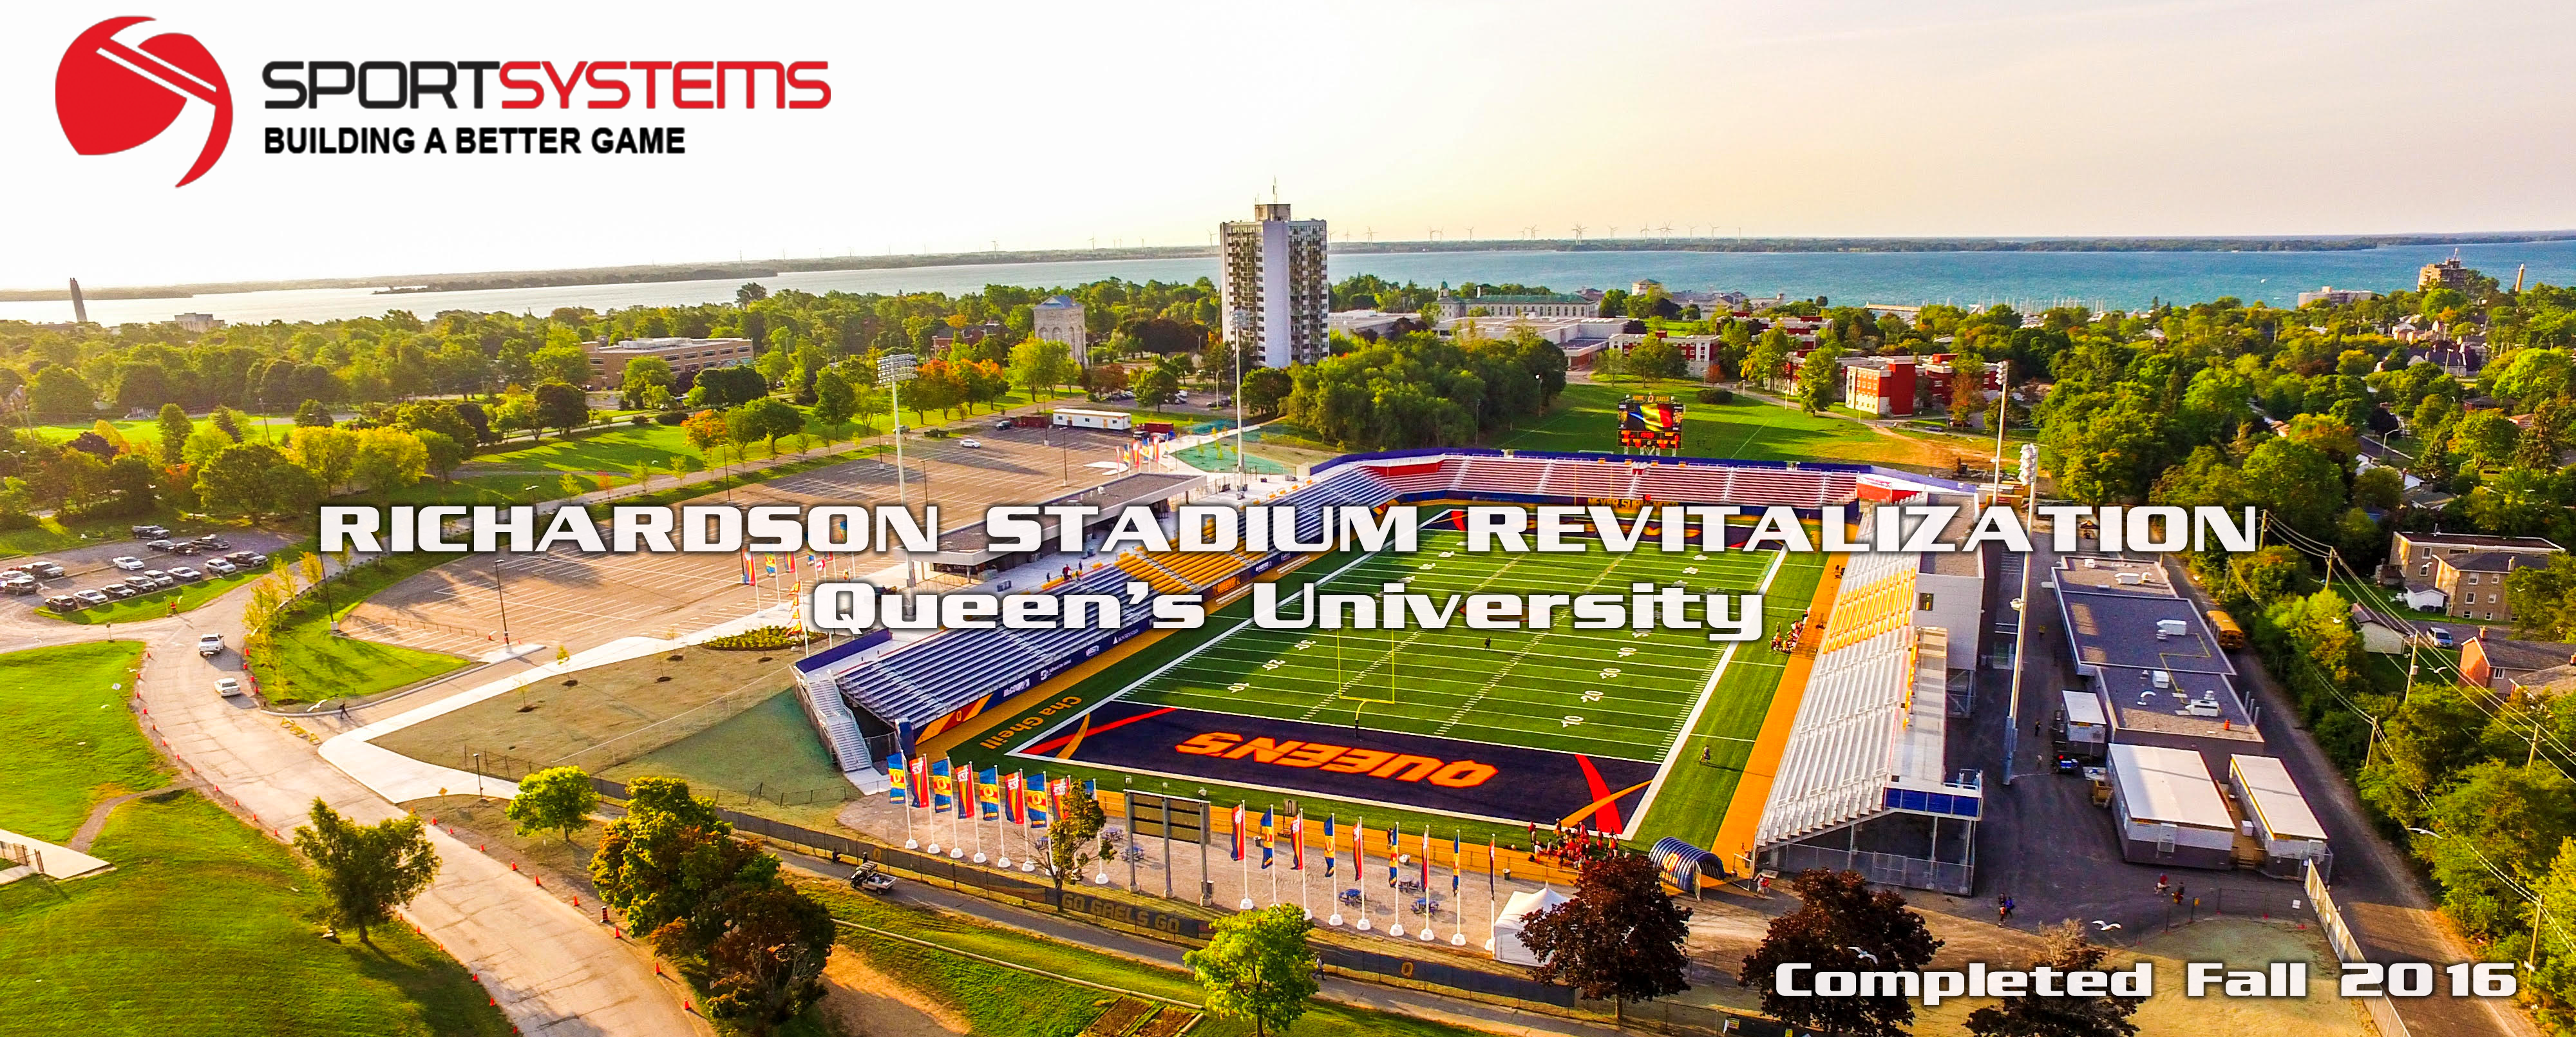 richardson-stadium-feature-page-header.png